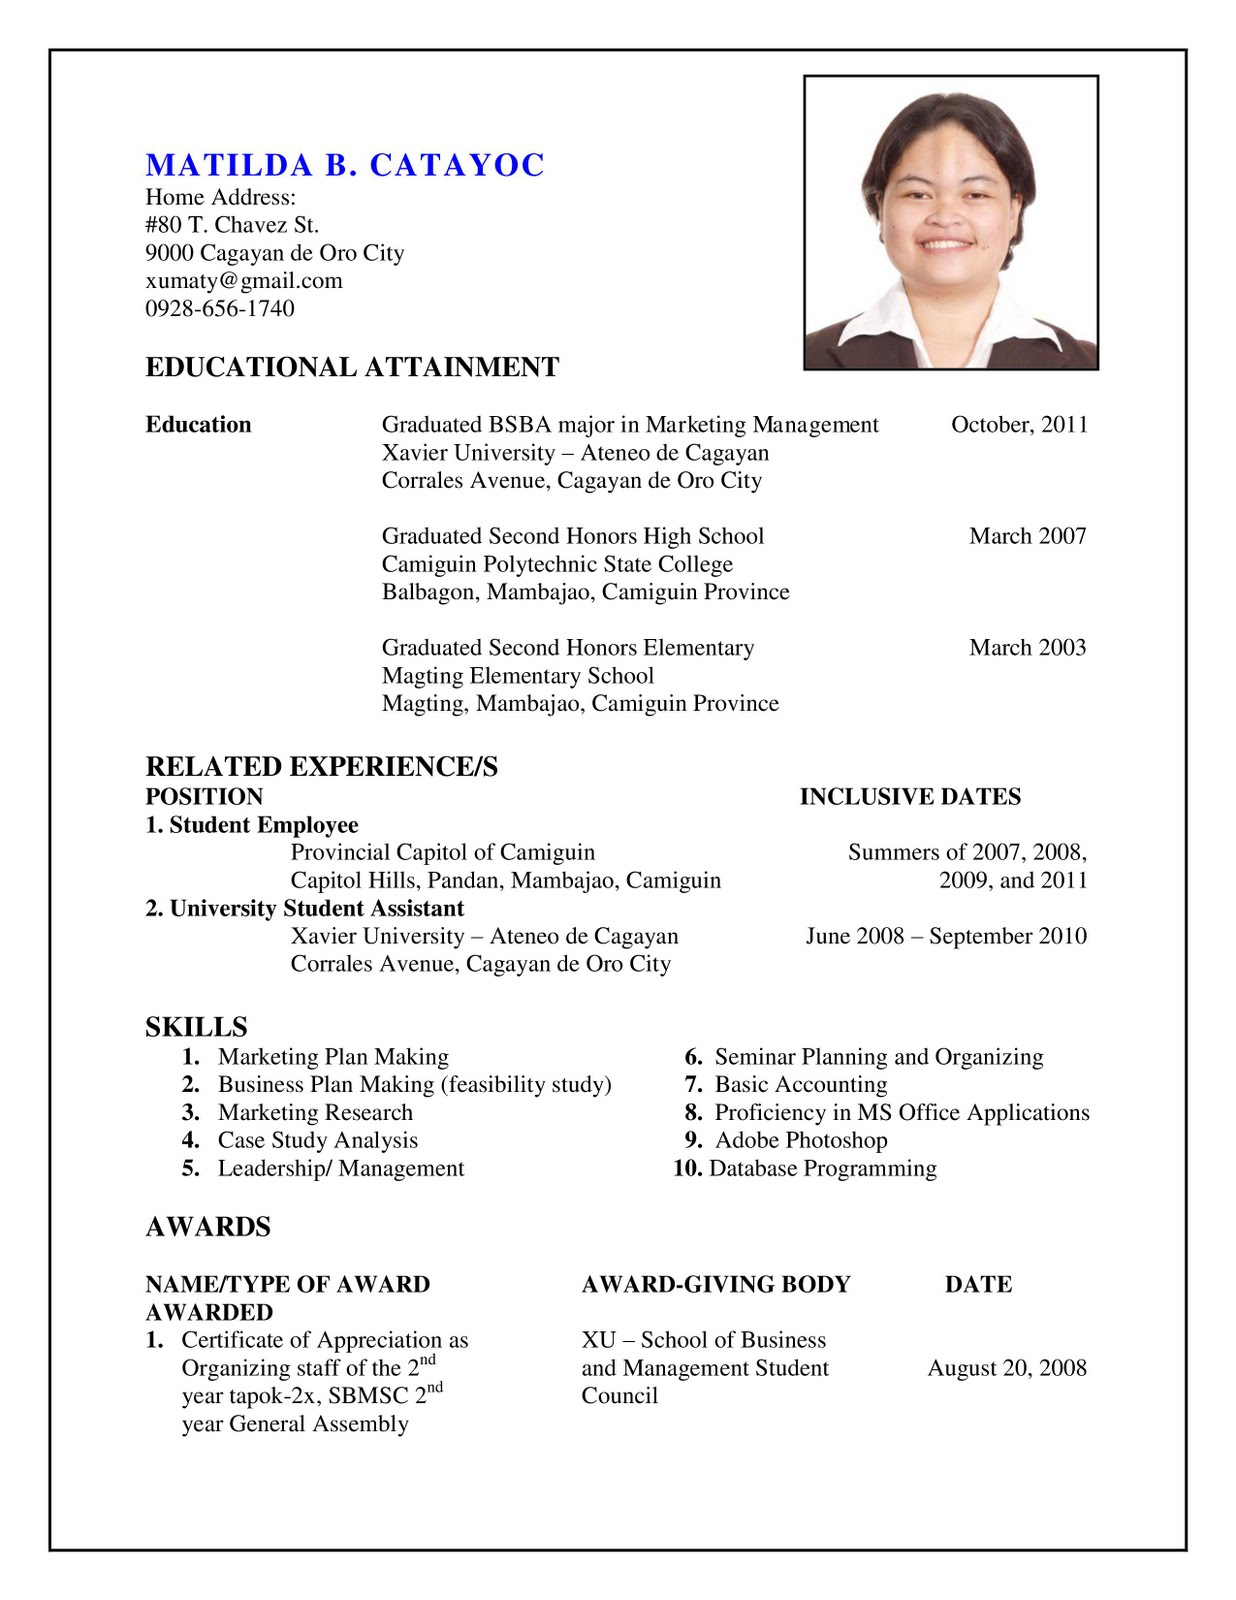 How To Make A Resume And Cover Letter For Free Life As I Make It My Latest Resume